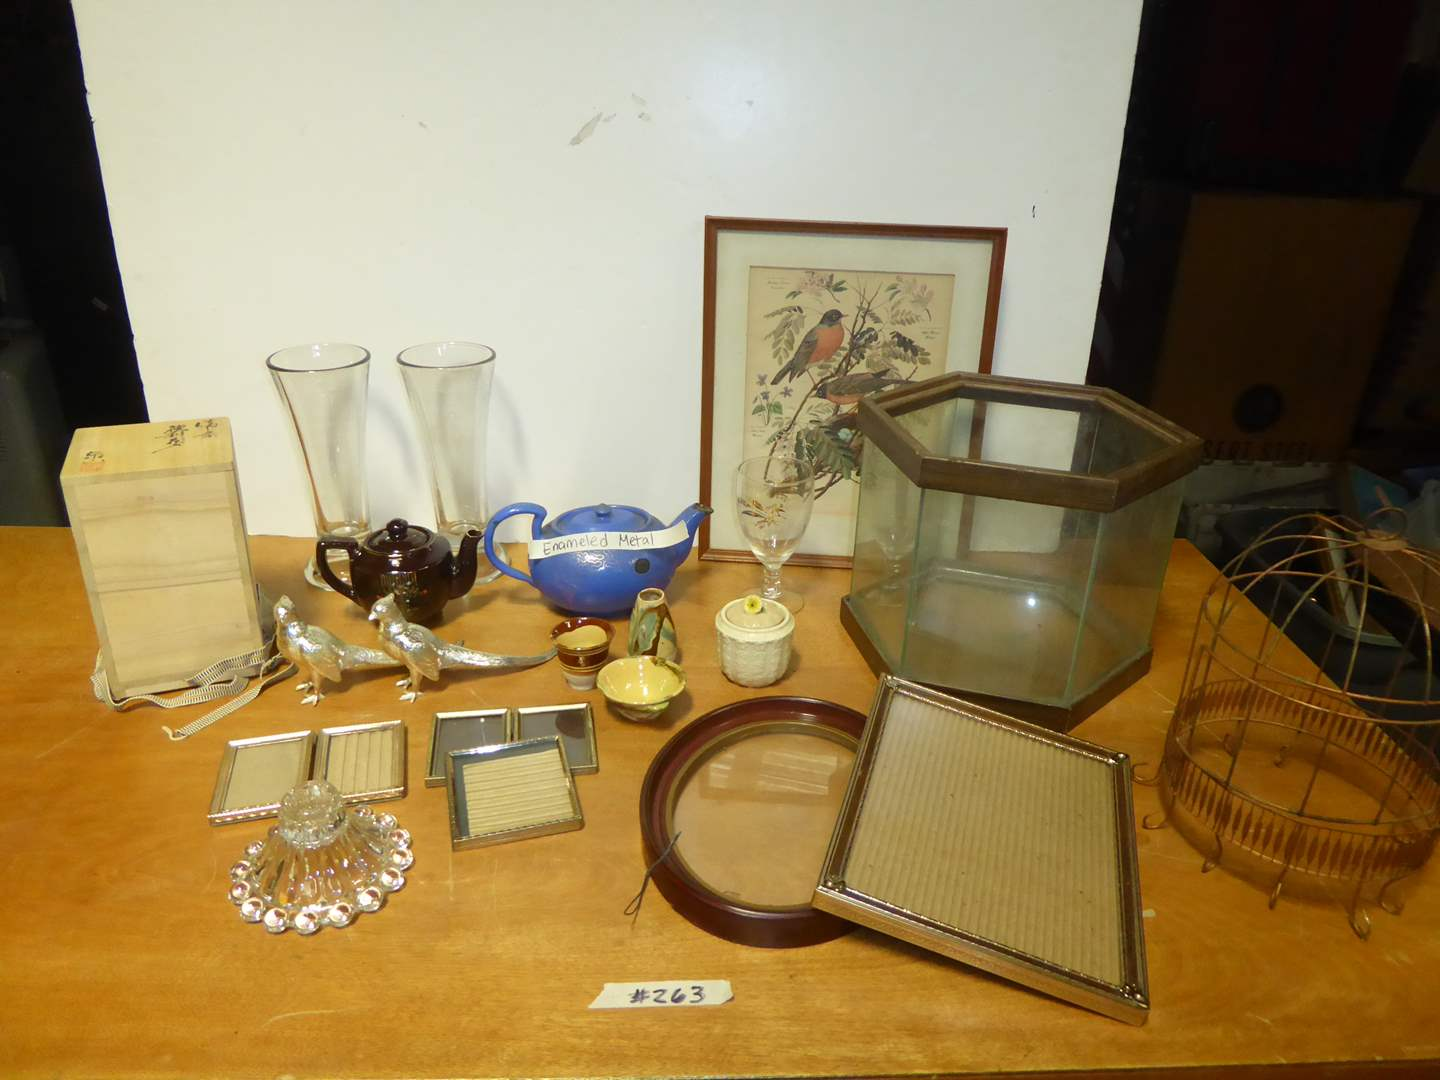 Lot # 263 - Terrarium, Enameled Metal Tea Pot & Other Collectibles  (main image)